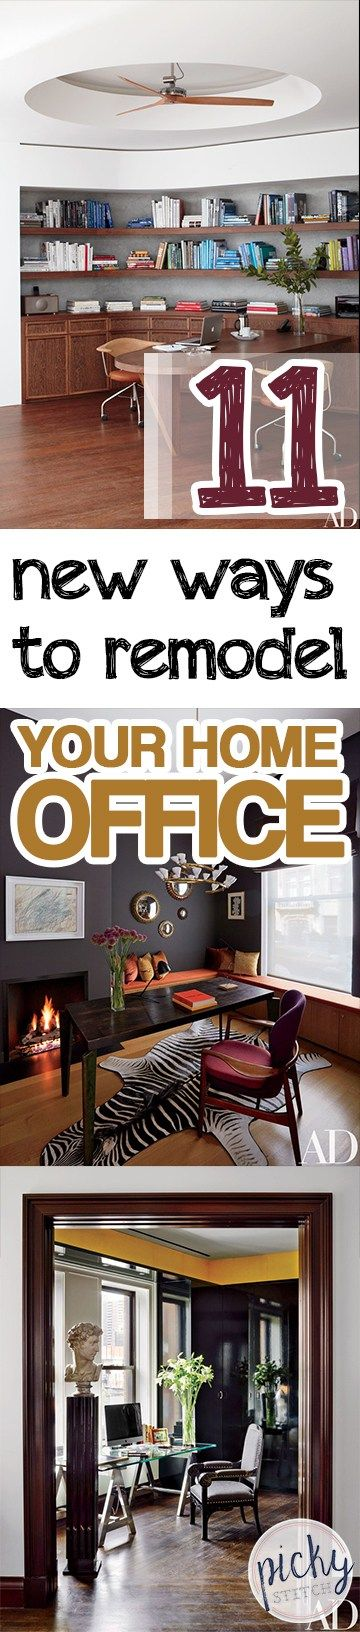 11 New Ways to Remodel Your Home